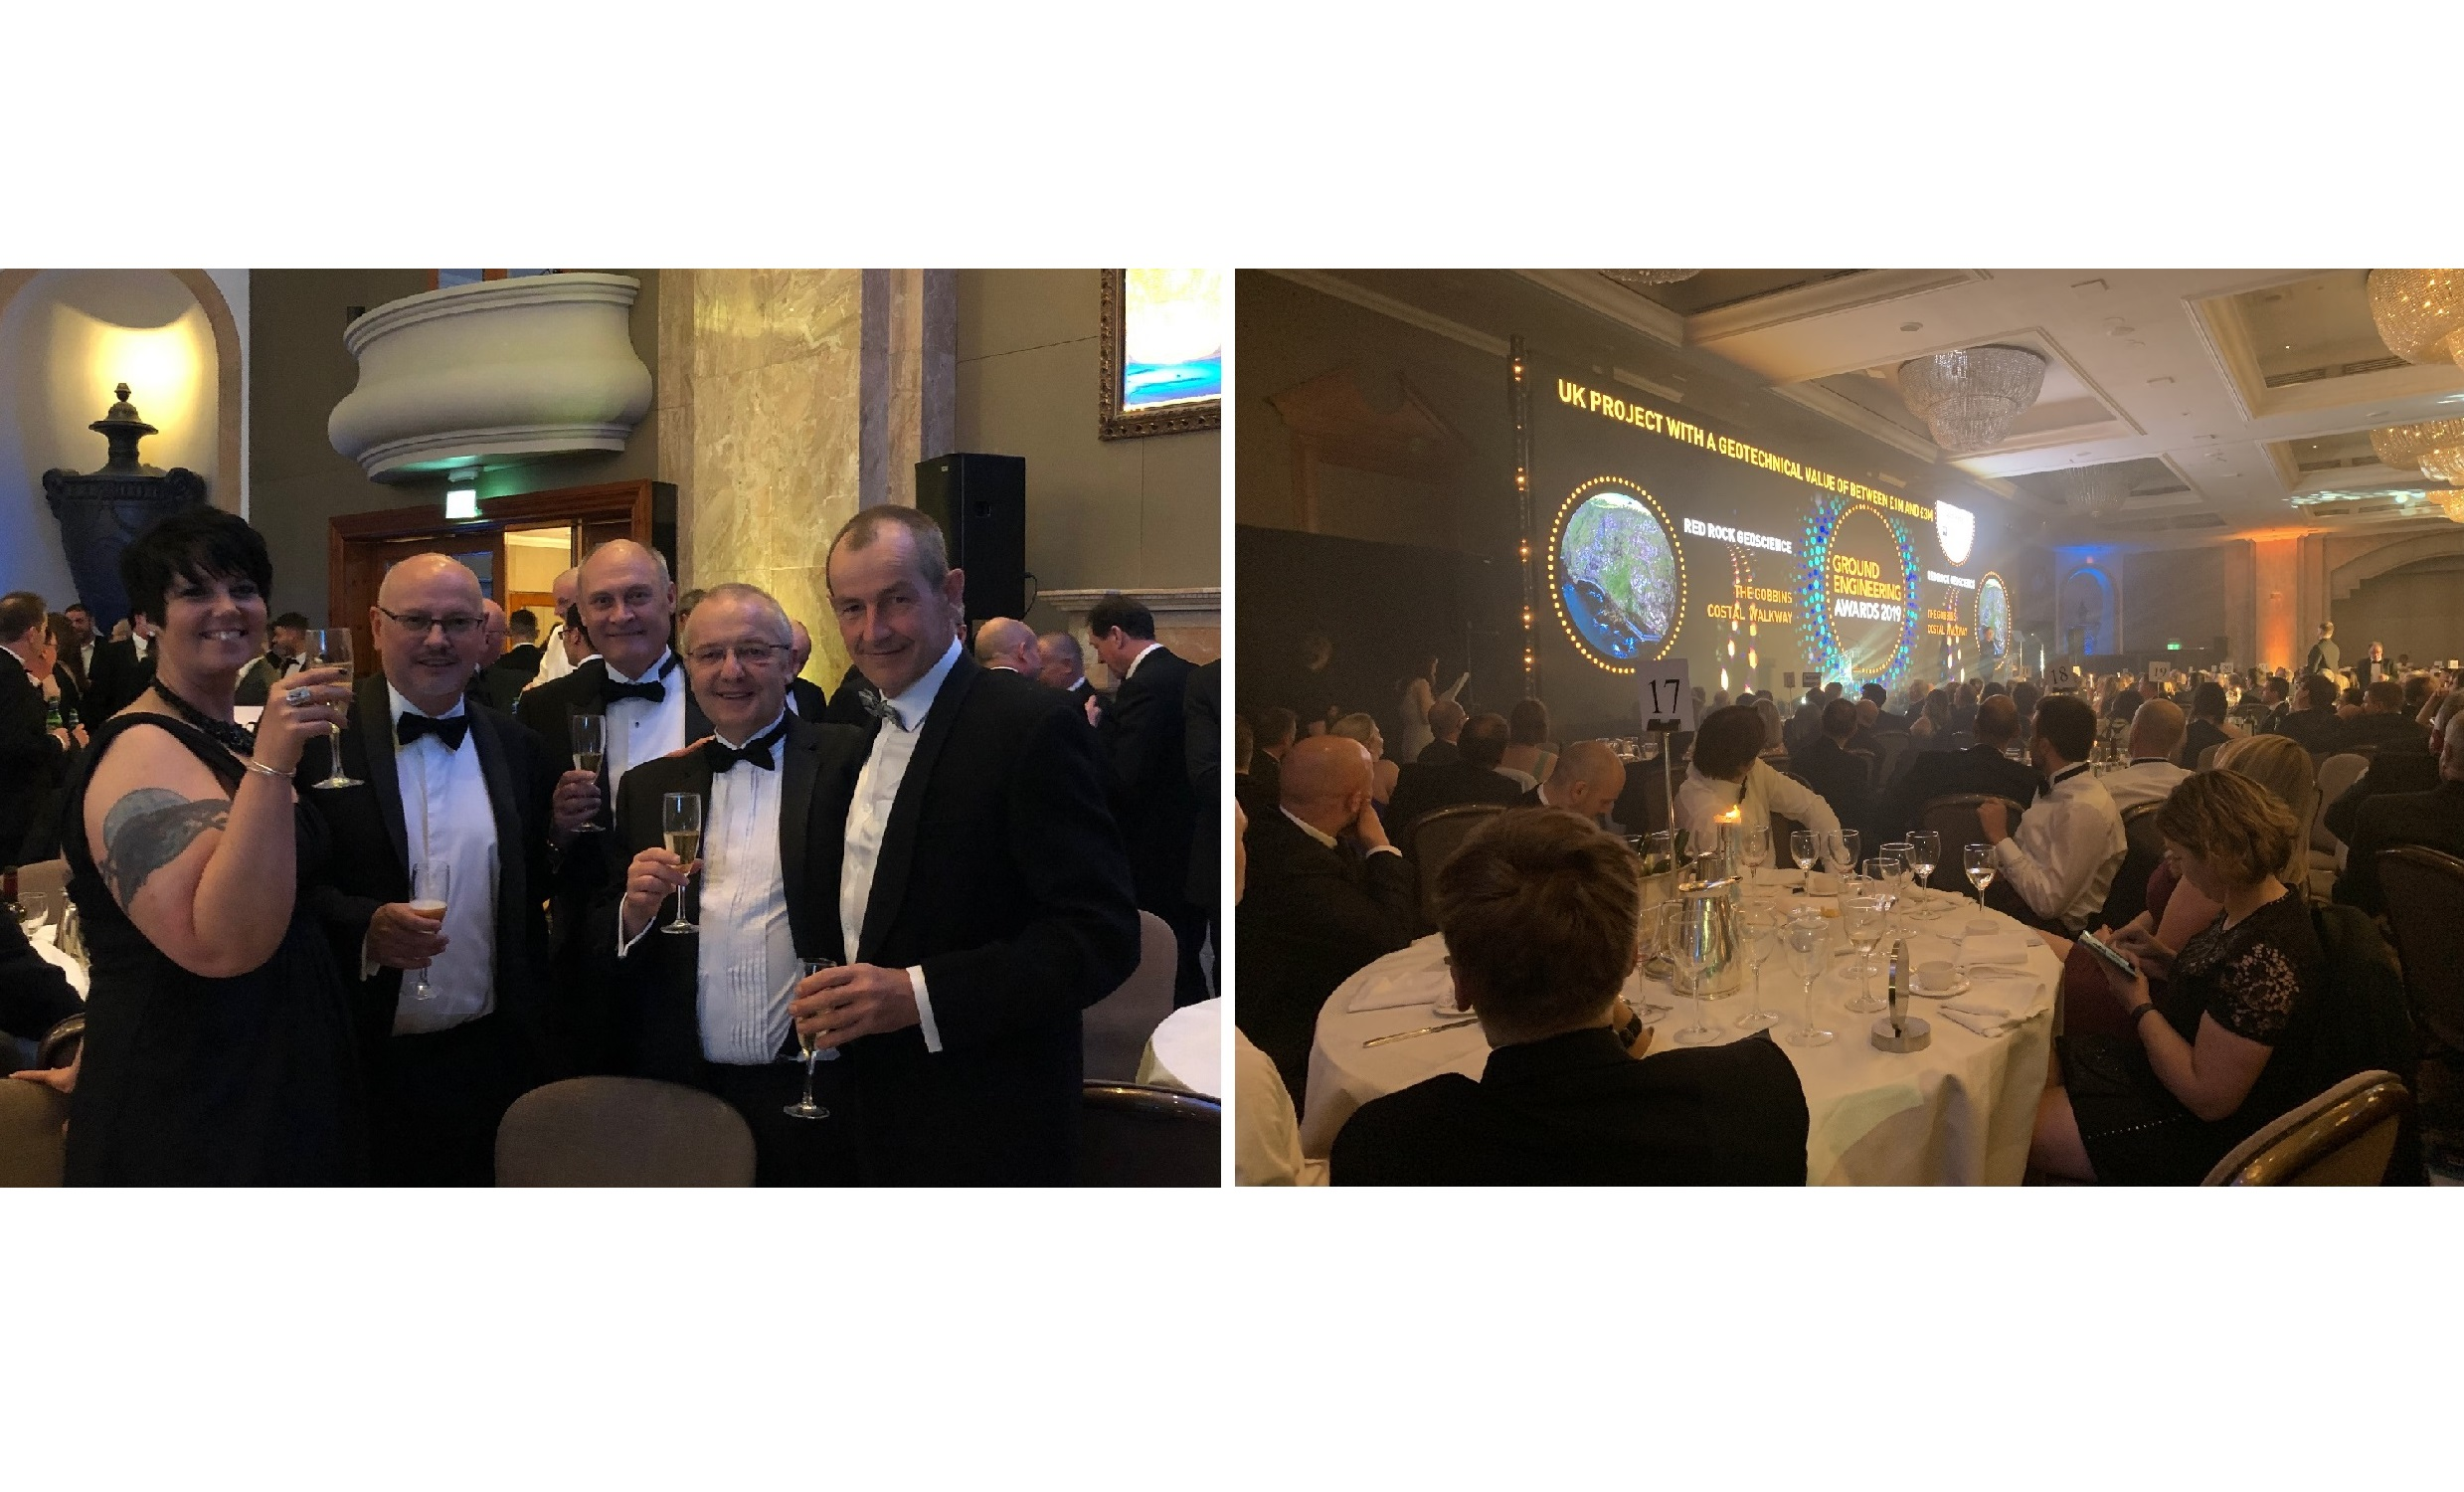 Success at the Ground Engineering Awards